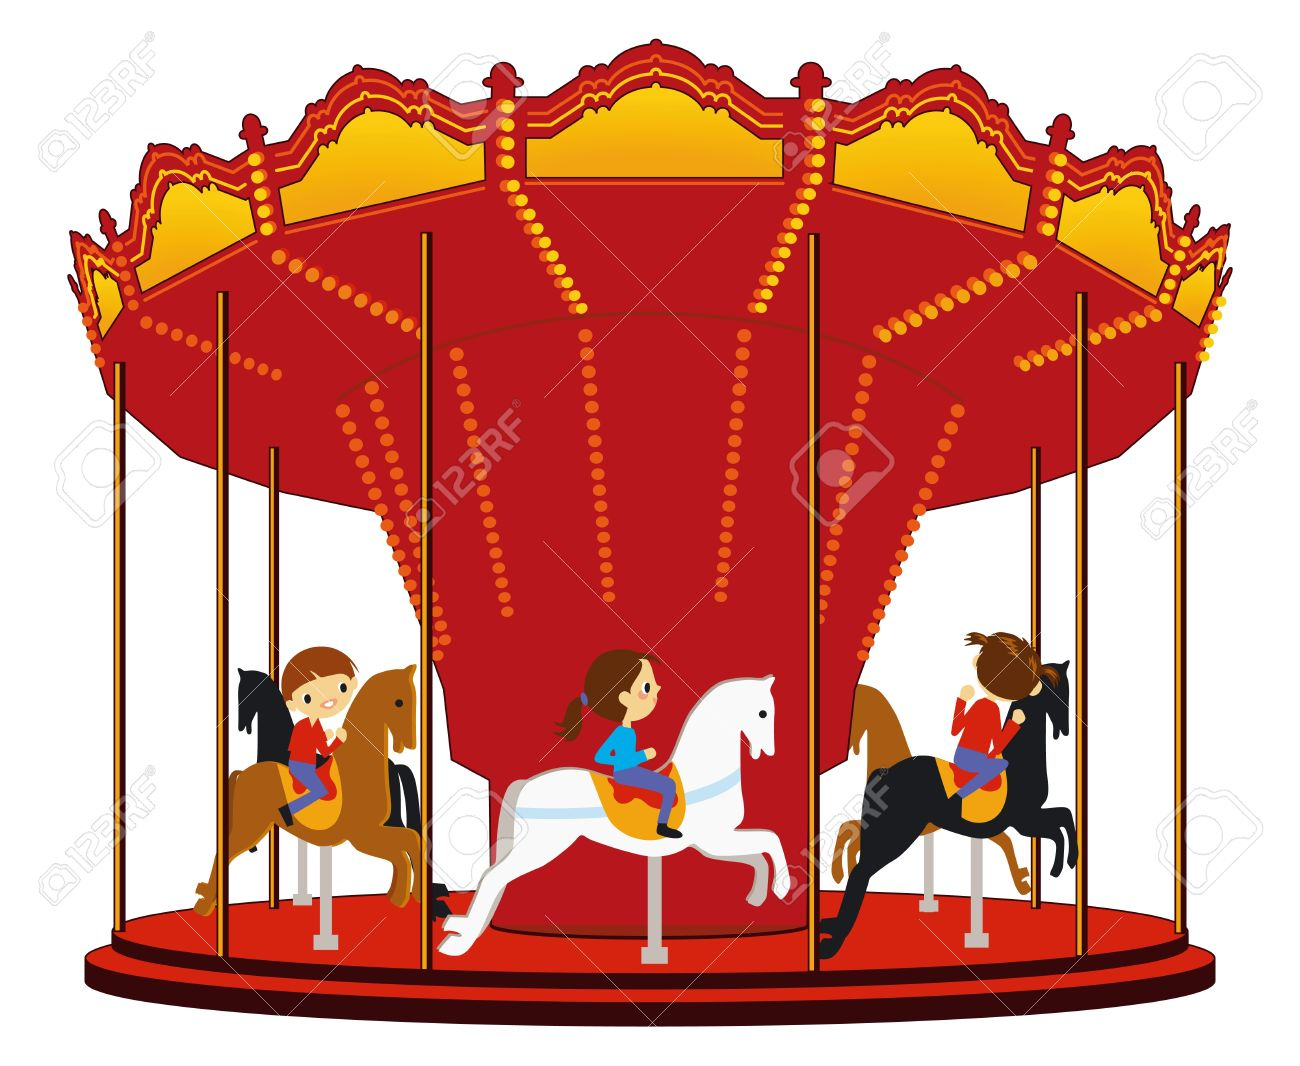 Children S Carousel Royalty Free Cliparts, Vectors, And Stock.